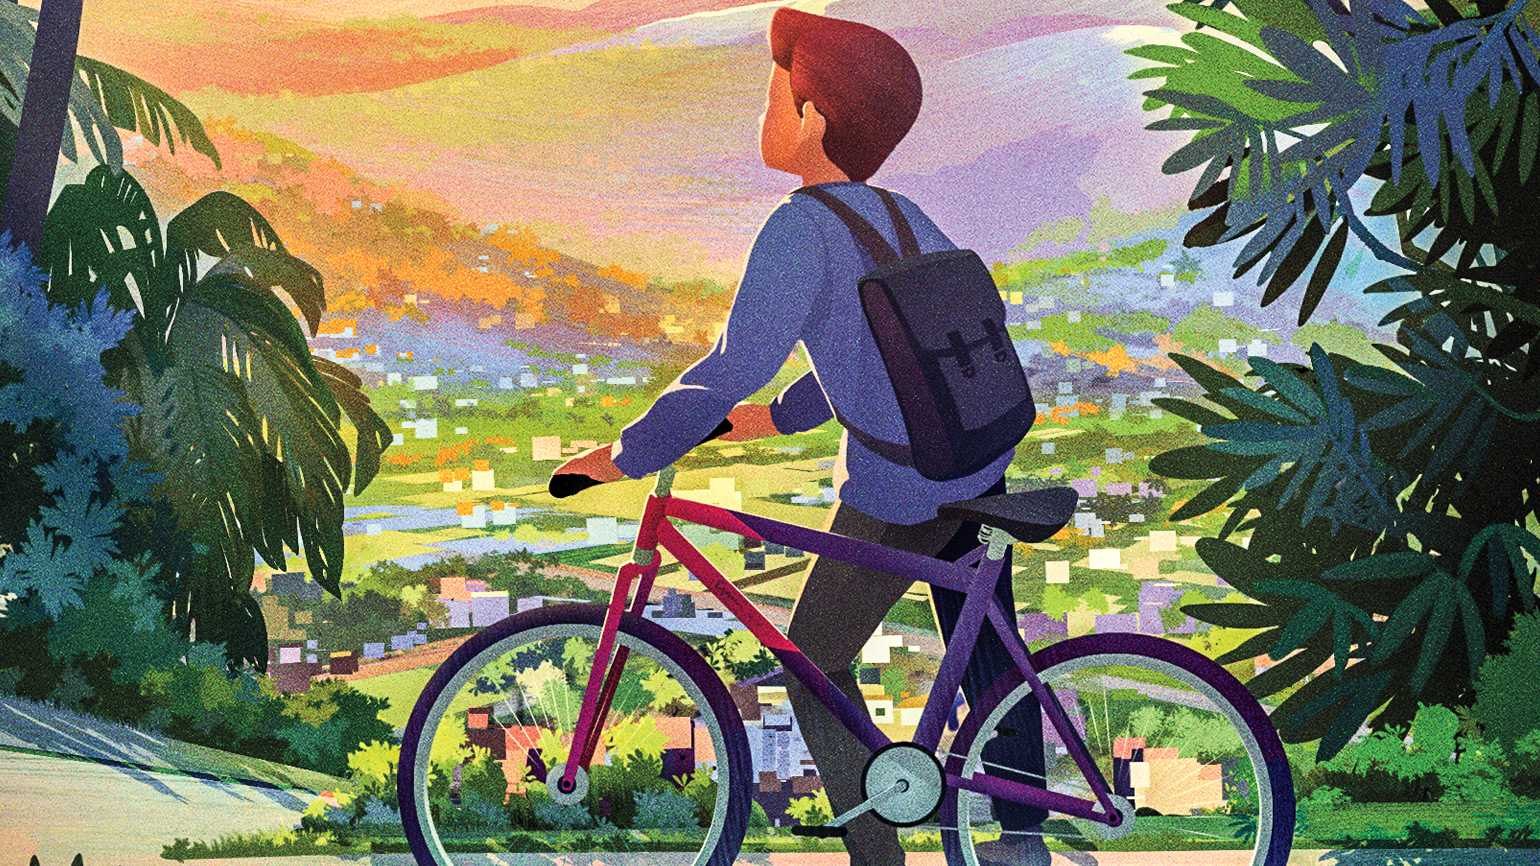 An artist's rendering of a young boy on a bike.